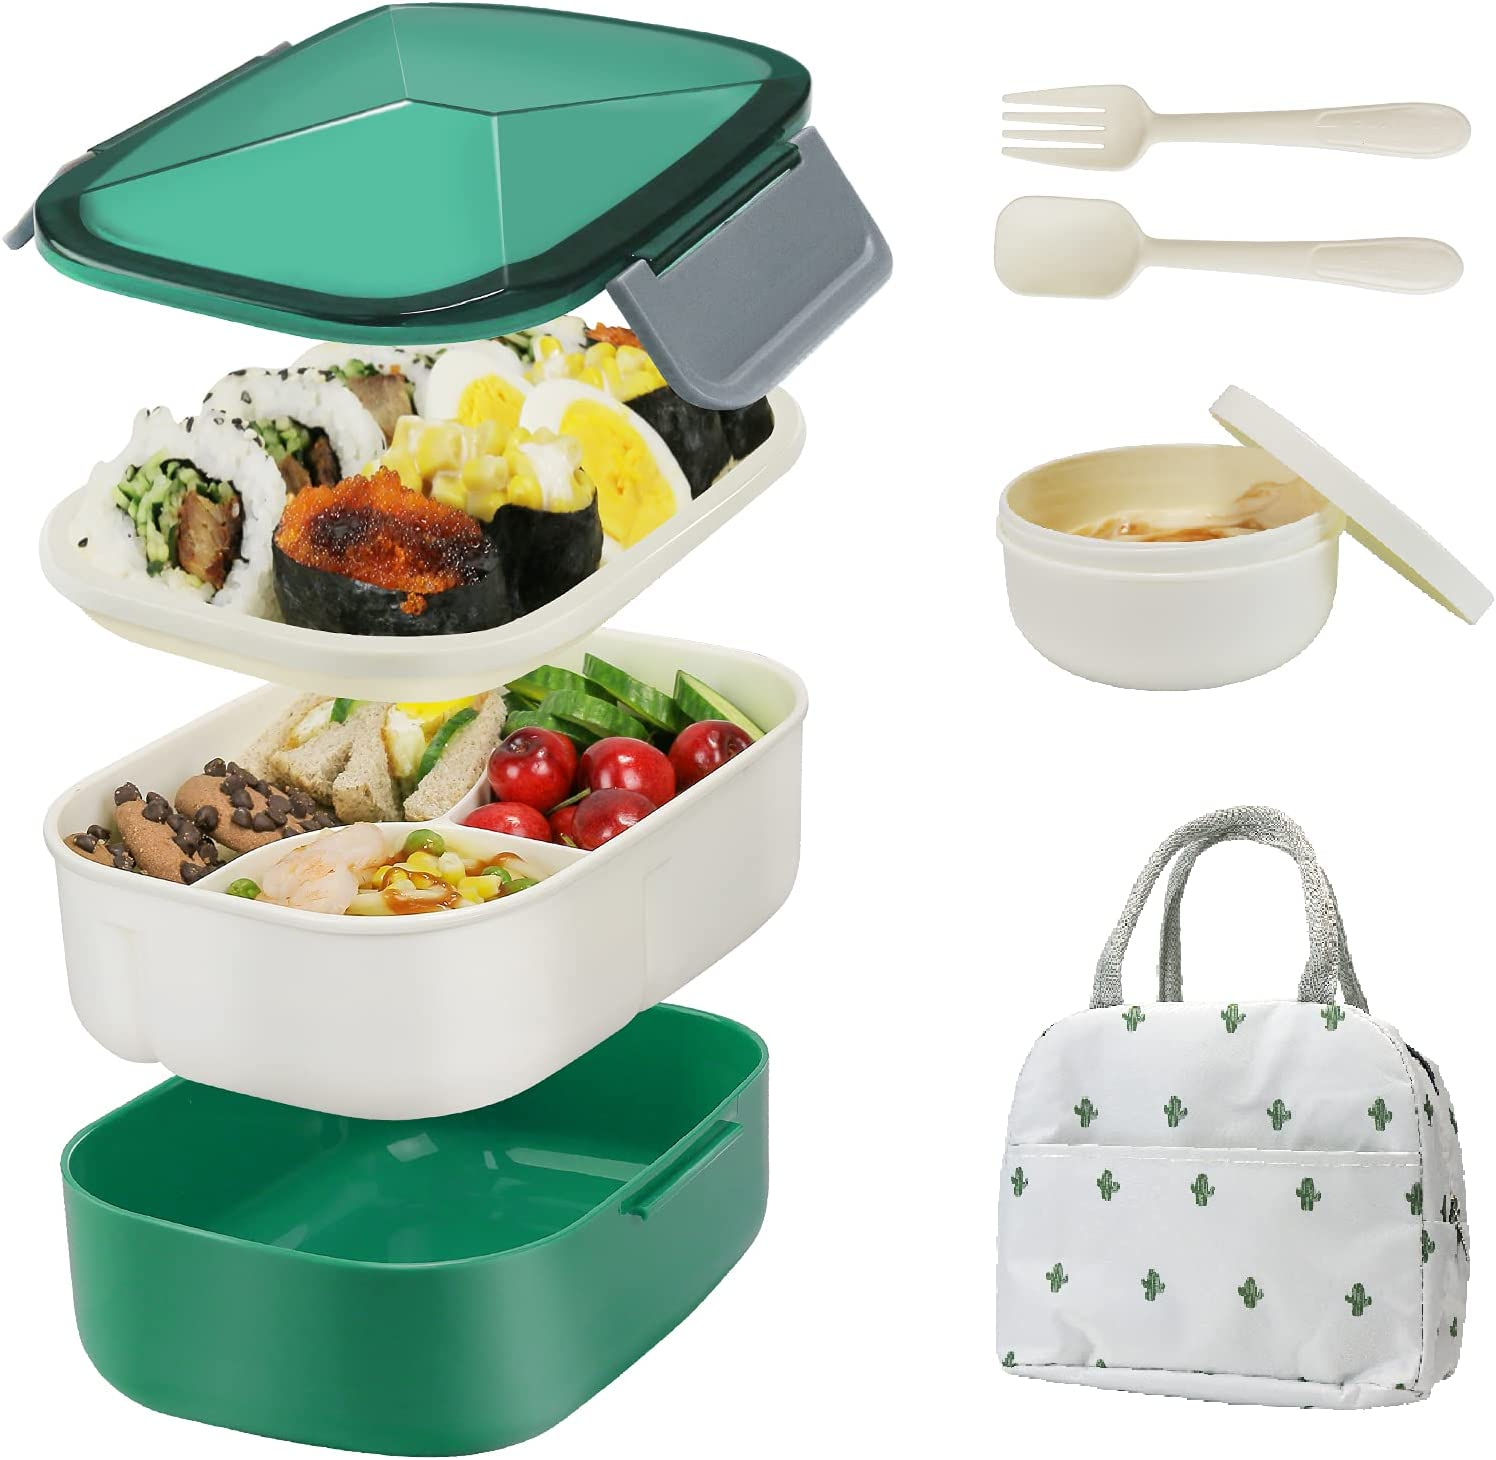 Bestjing Bento Lunch box for Adults, 54.1oz BPA Free Bento Box, 2 Tier &3 Compartment Design Food Containers for Lunch &Snacks, Built-in Utensil&Sauce Cup, Bundled with Insulated Lunch Bag(Dark Green)